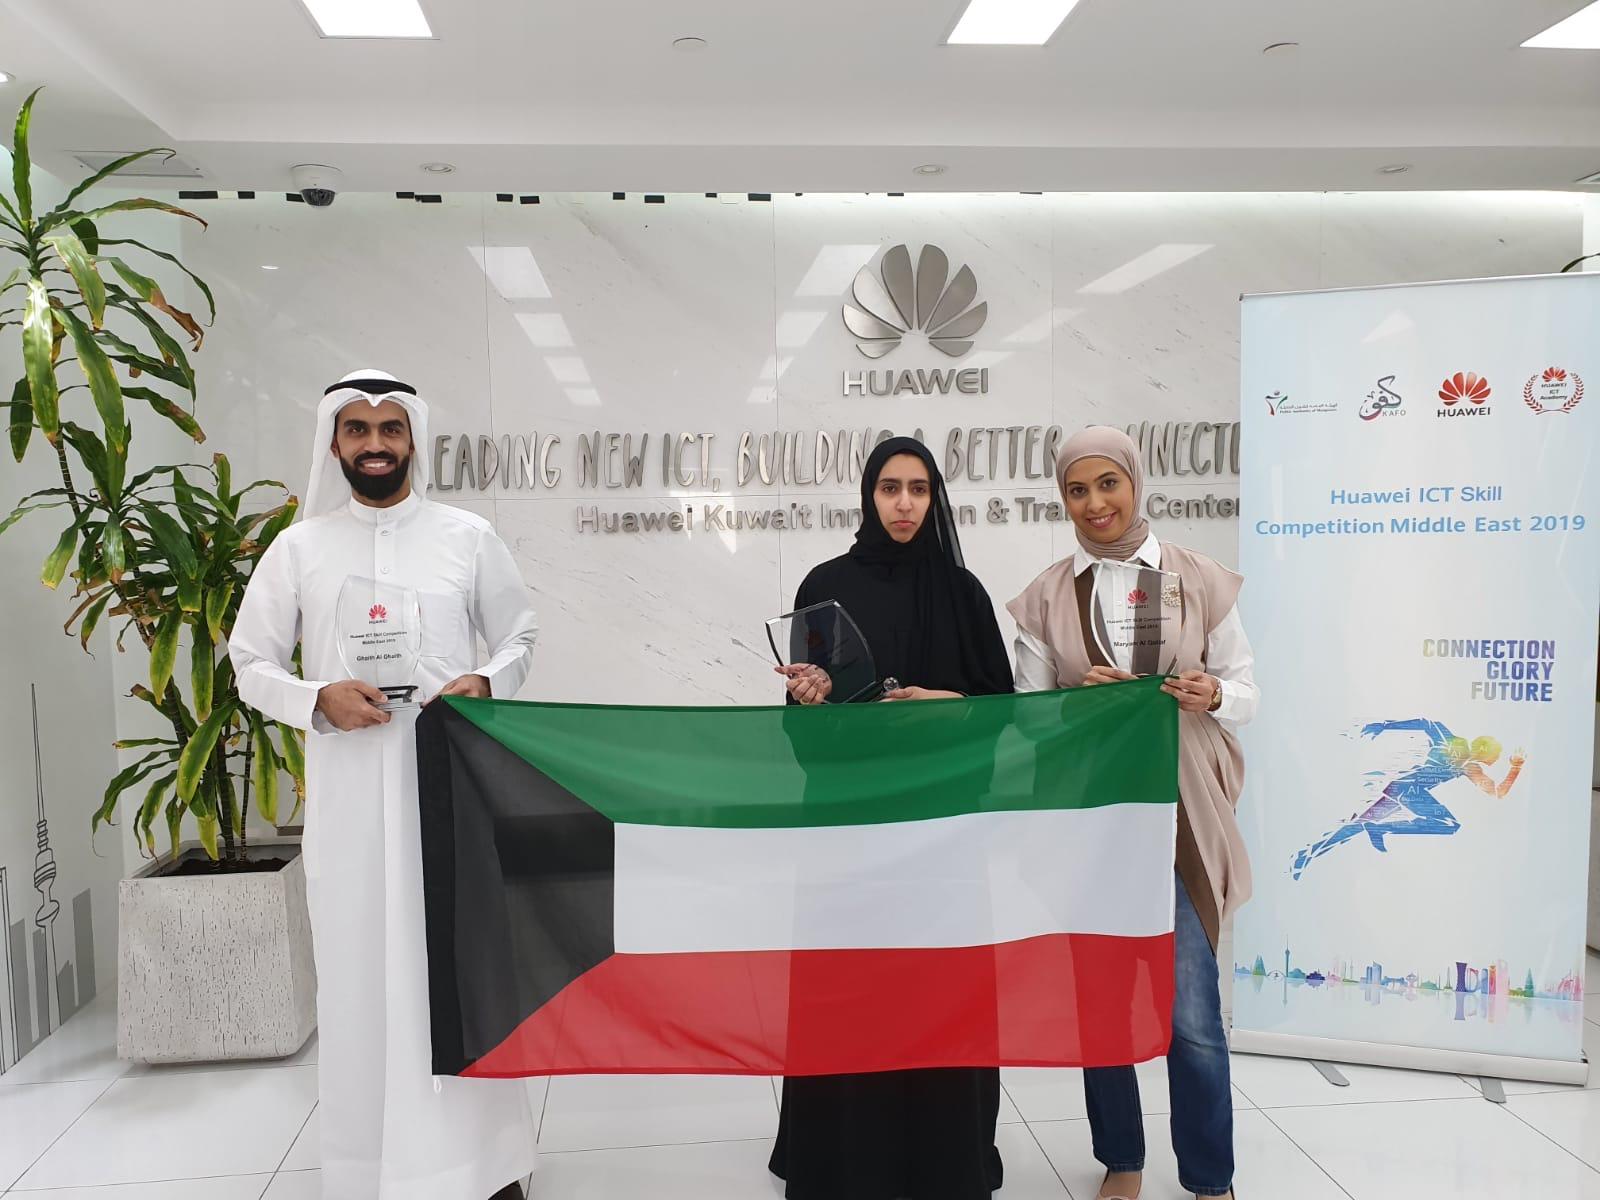 ACK students' Success in Huawei ICT Skill Competition